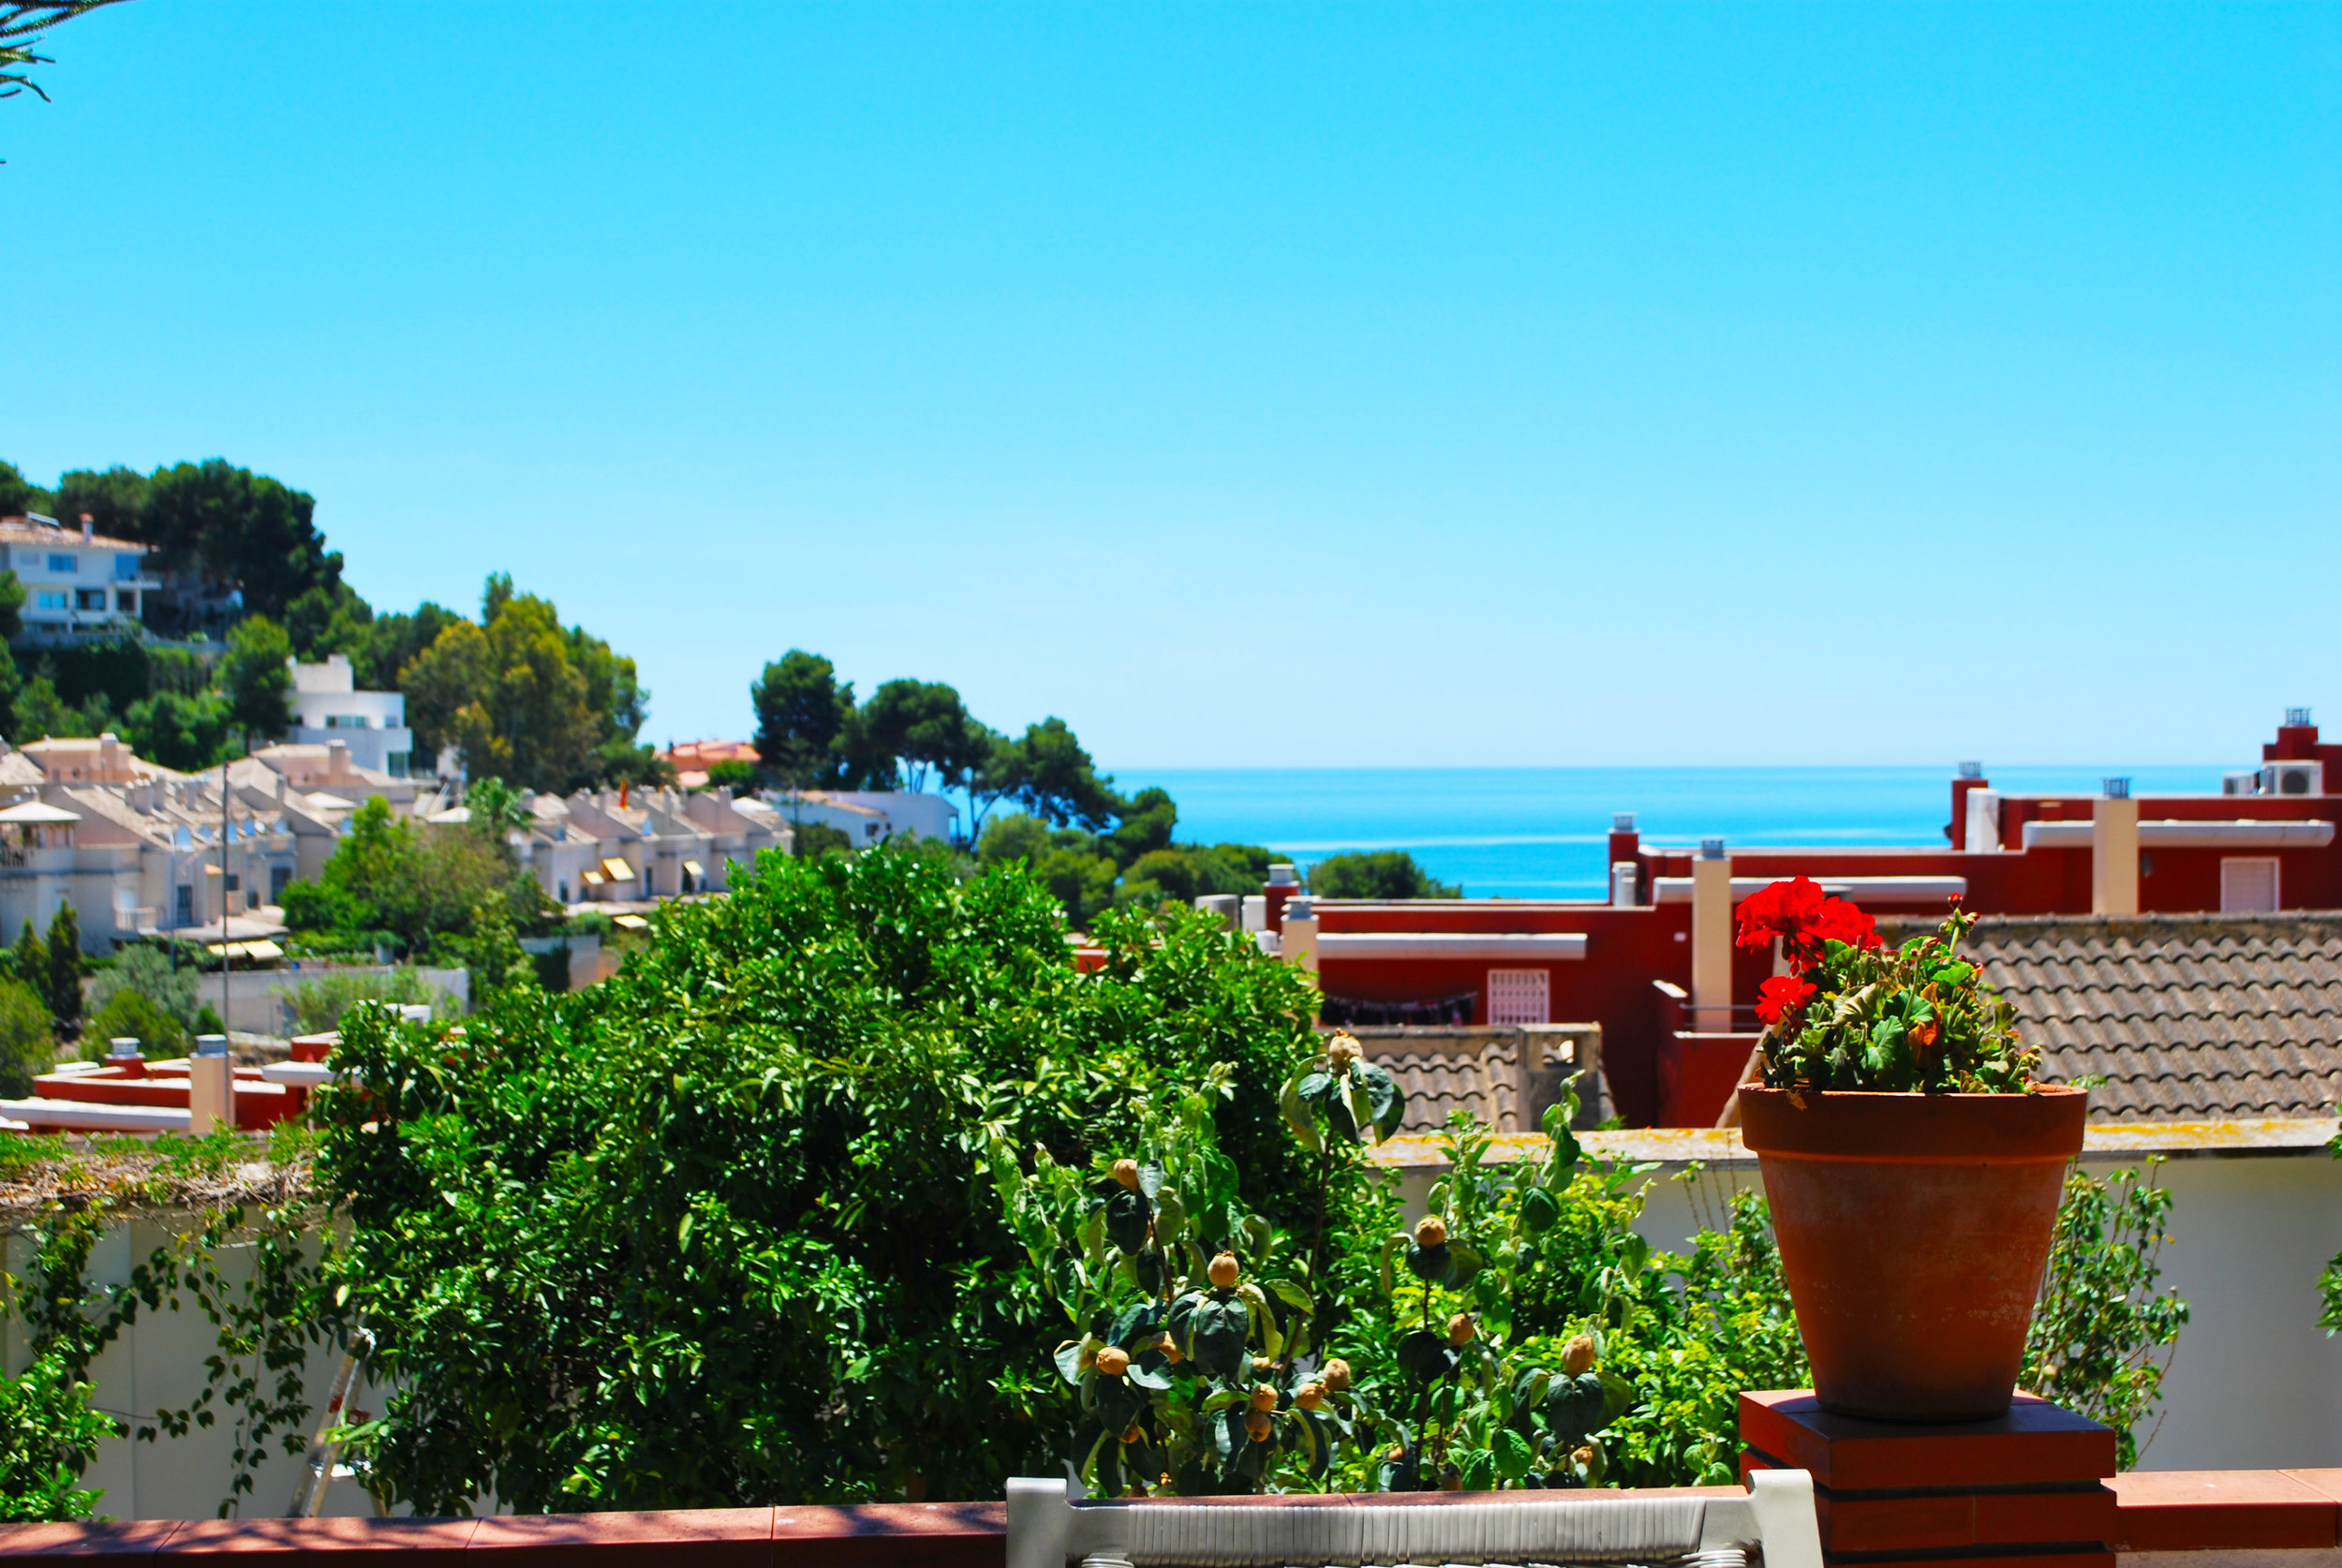 One of the stunning views from Hacienda Clavero